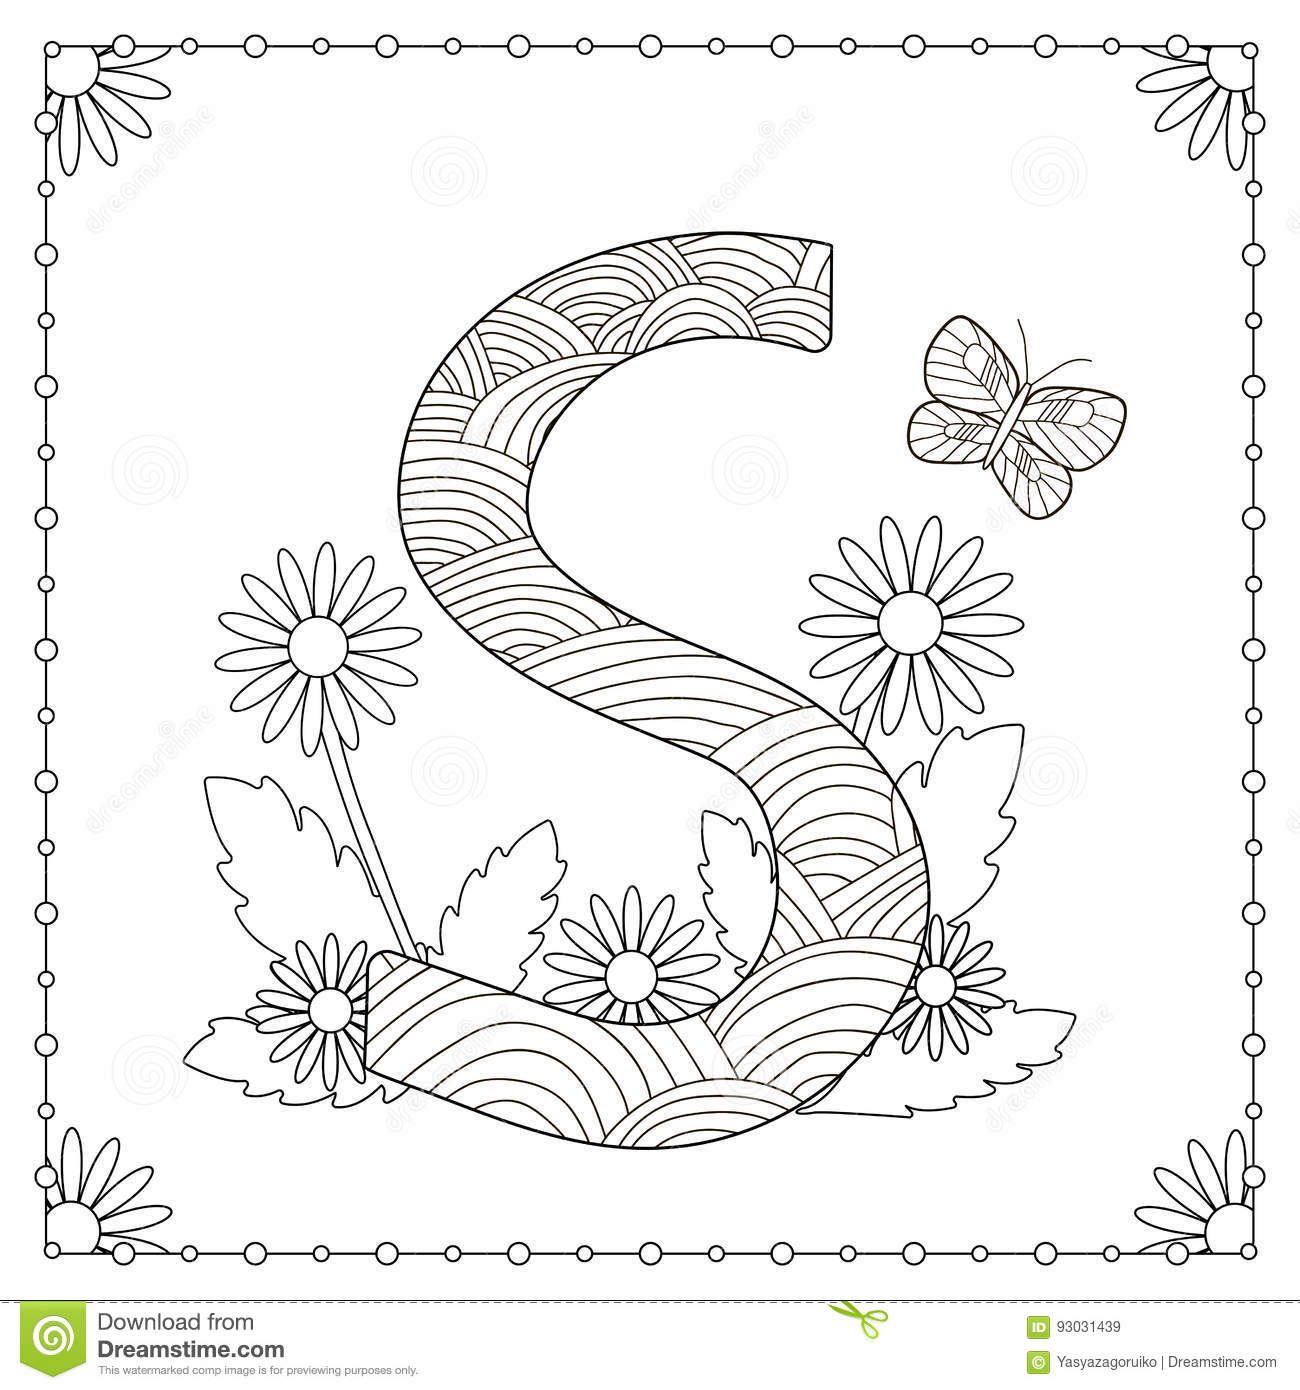 Alphabet coloring page stock illustration. Illustration of ...